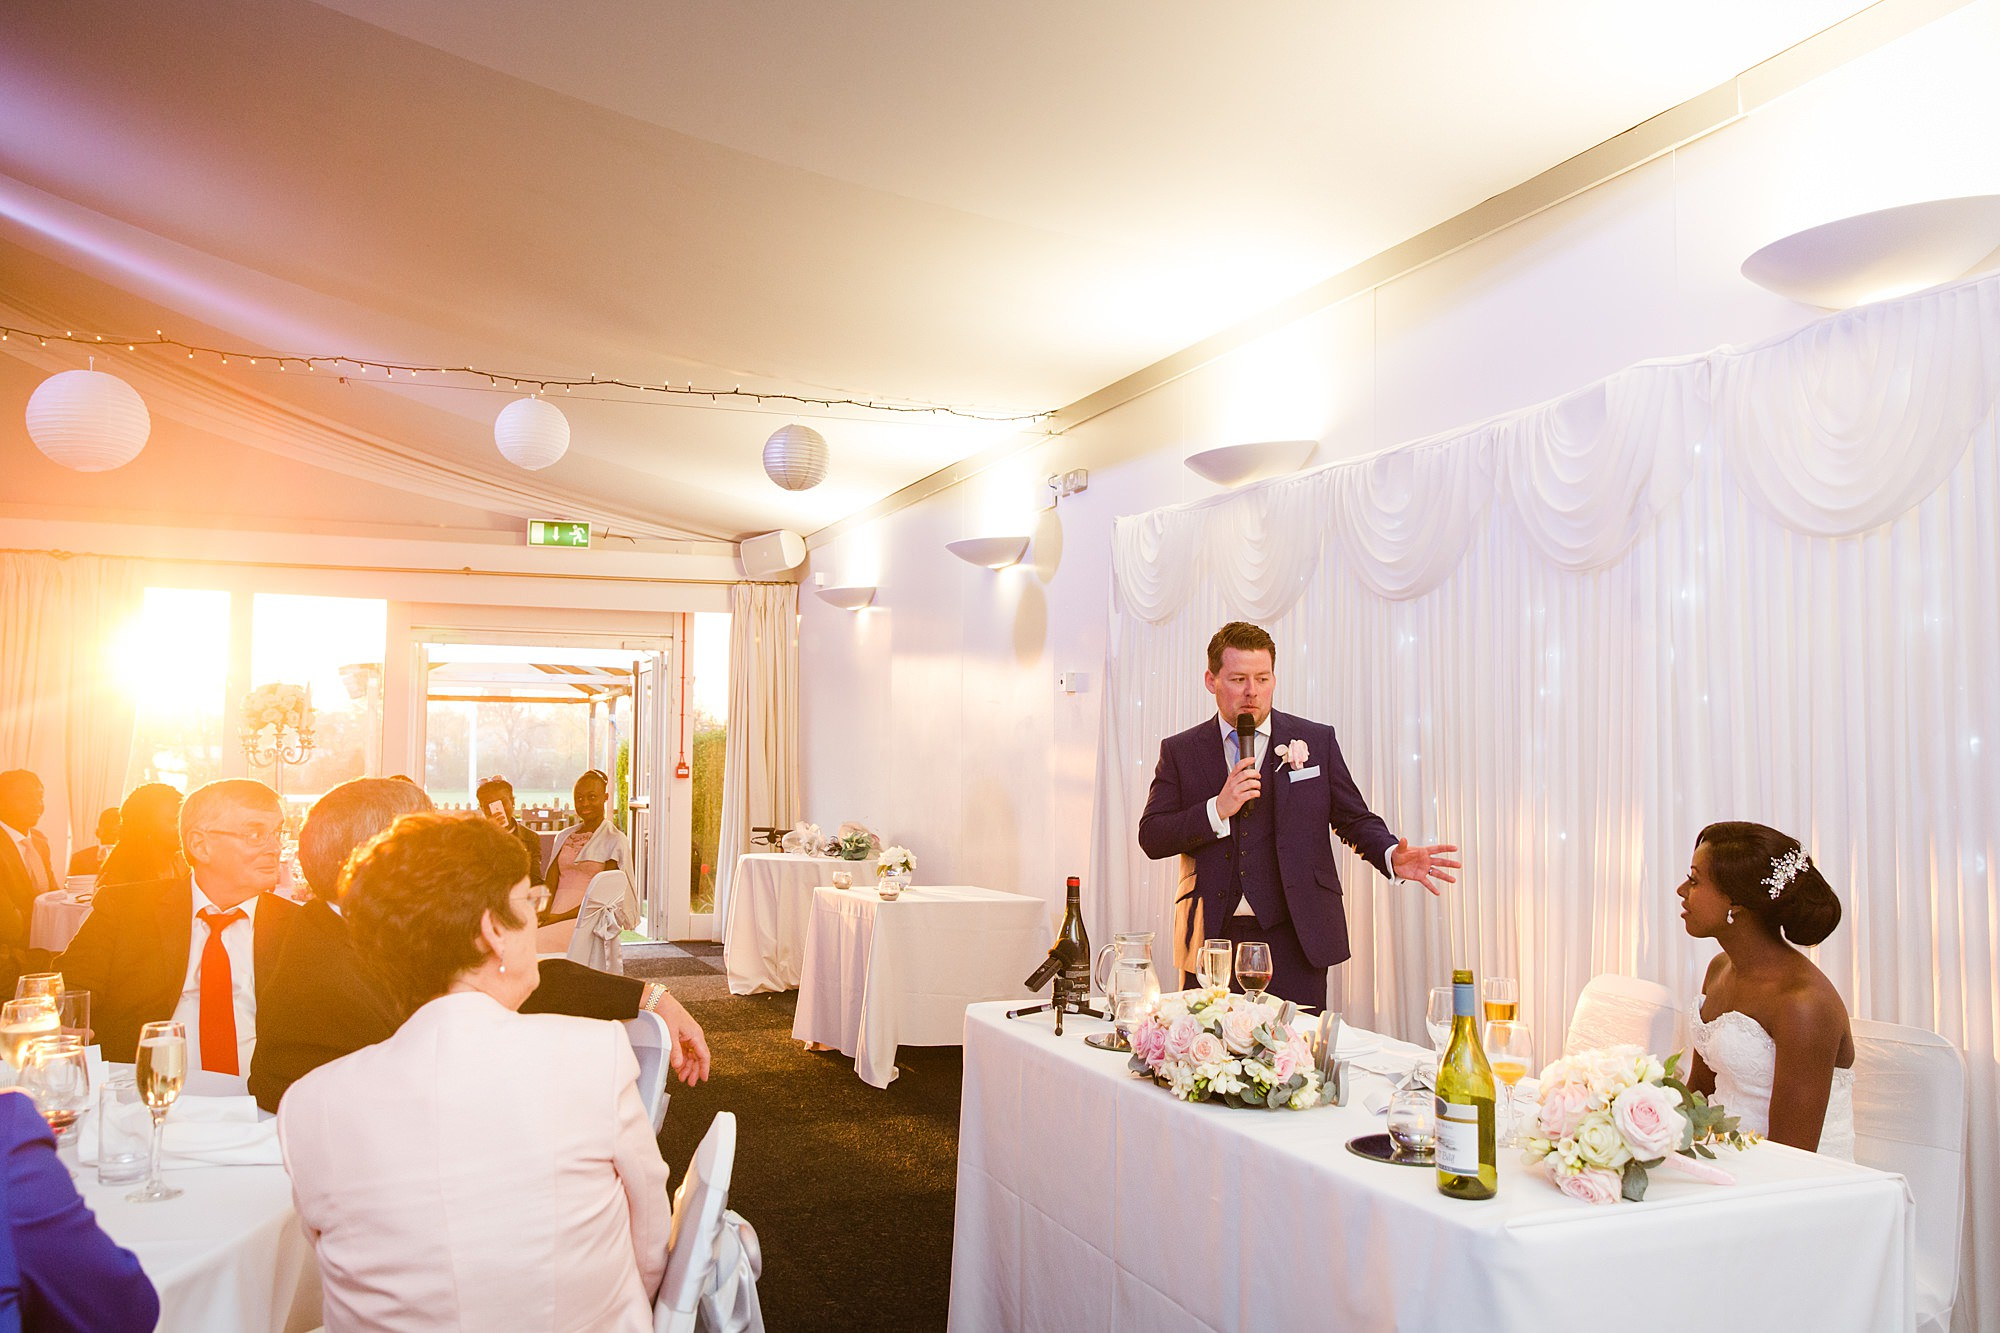 Bank of England Sports Centre wedding groom giving a speech